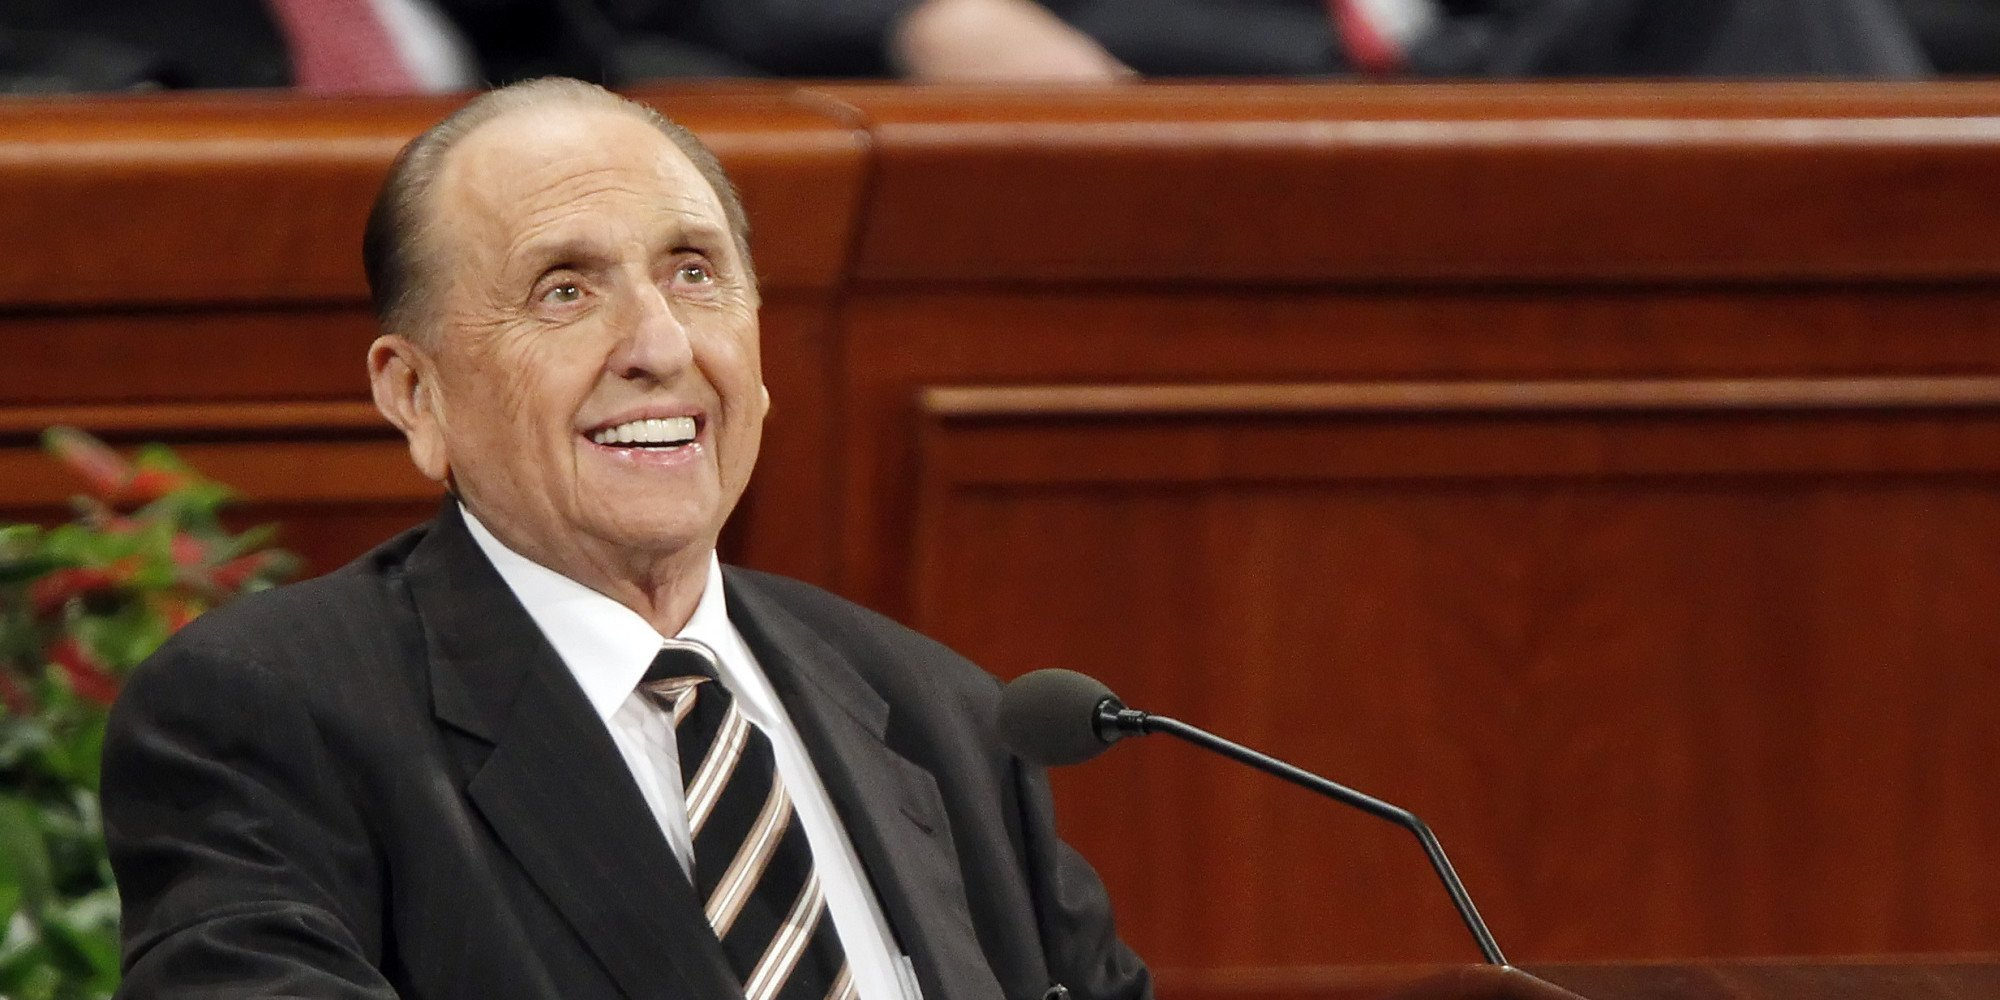 Thomas S. Monson Isn't Dead